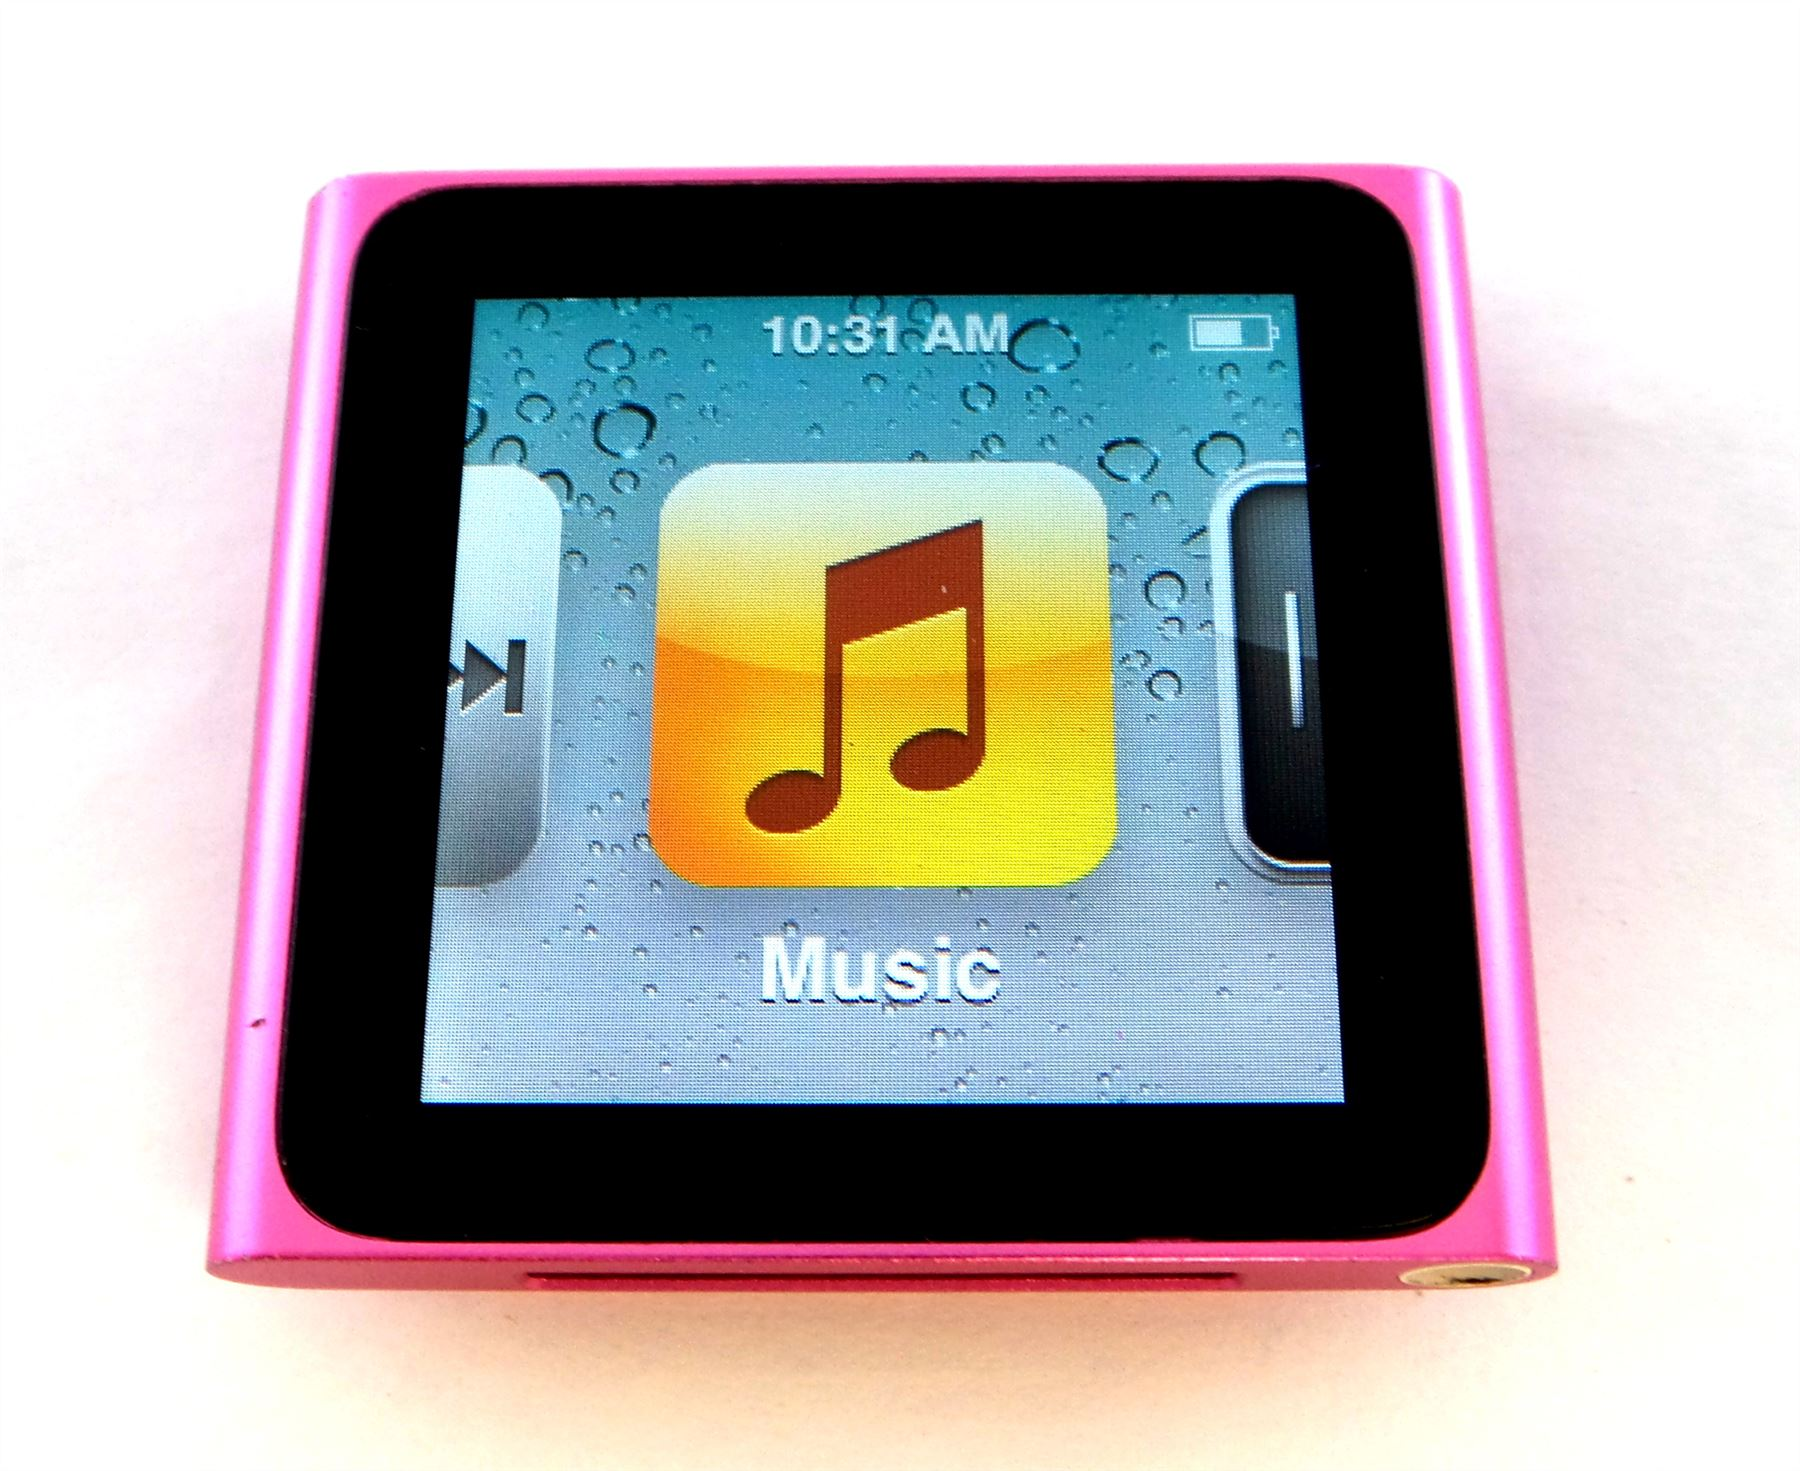 apple ipod nano 6th generation 8gb 16gb green pink silver. Black Bedroom Furniture Sets. Home Design Ideas